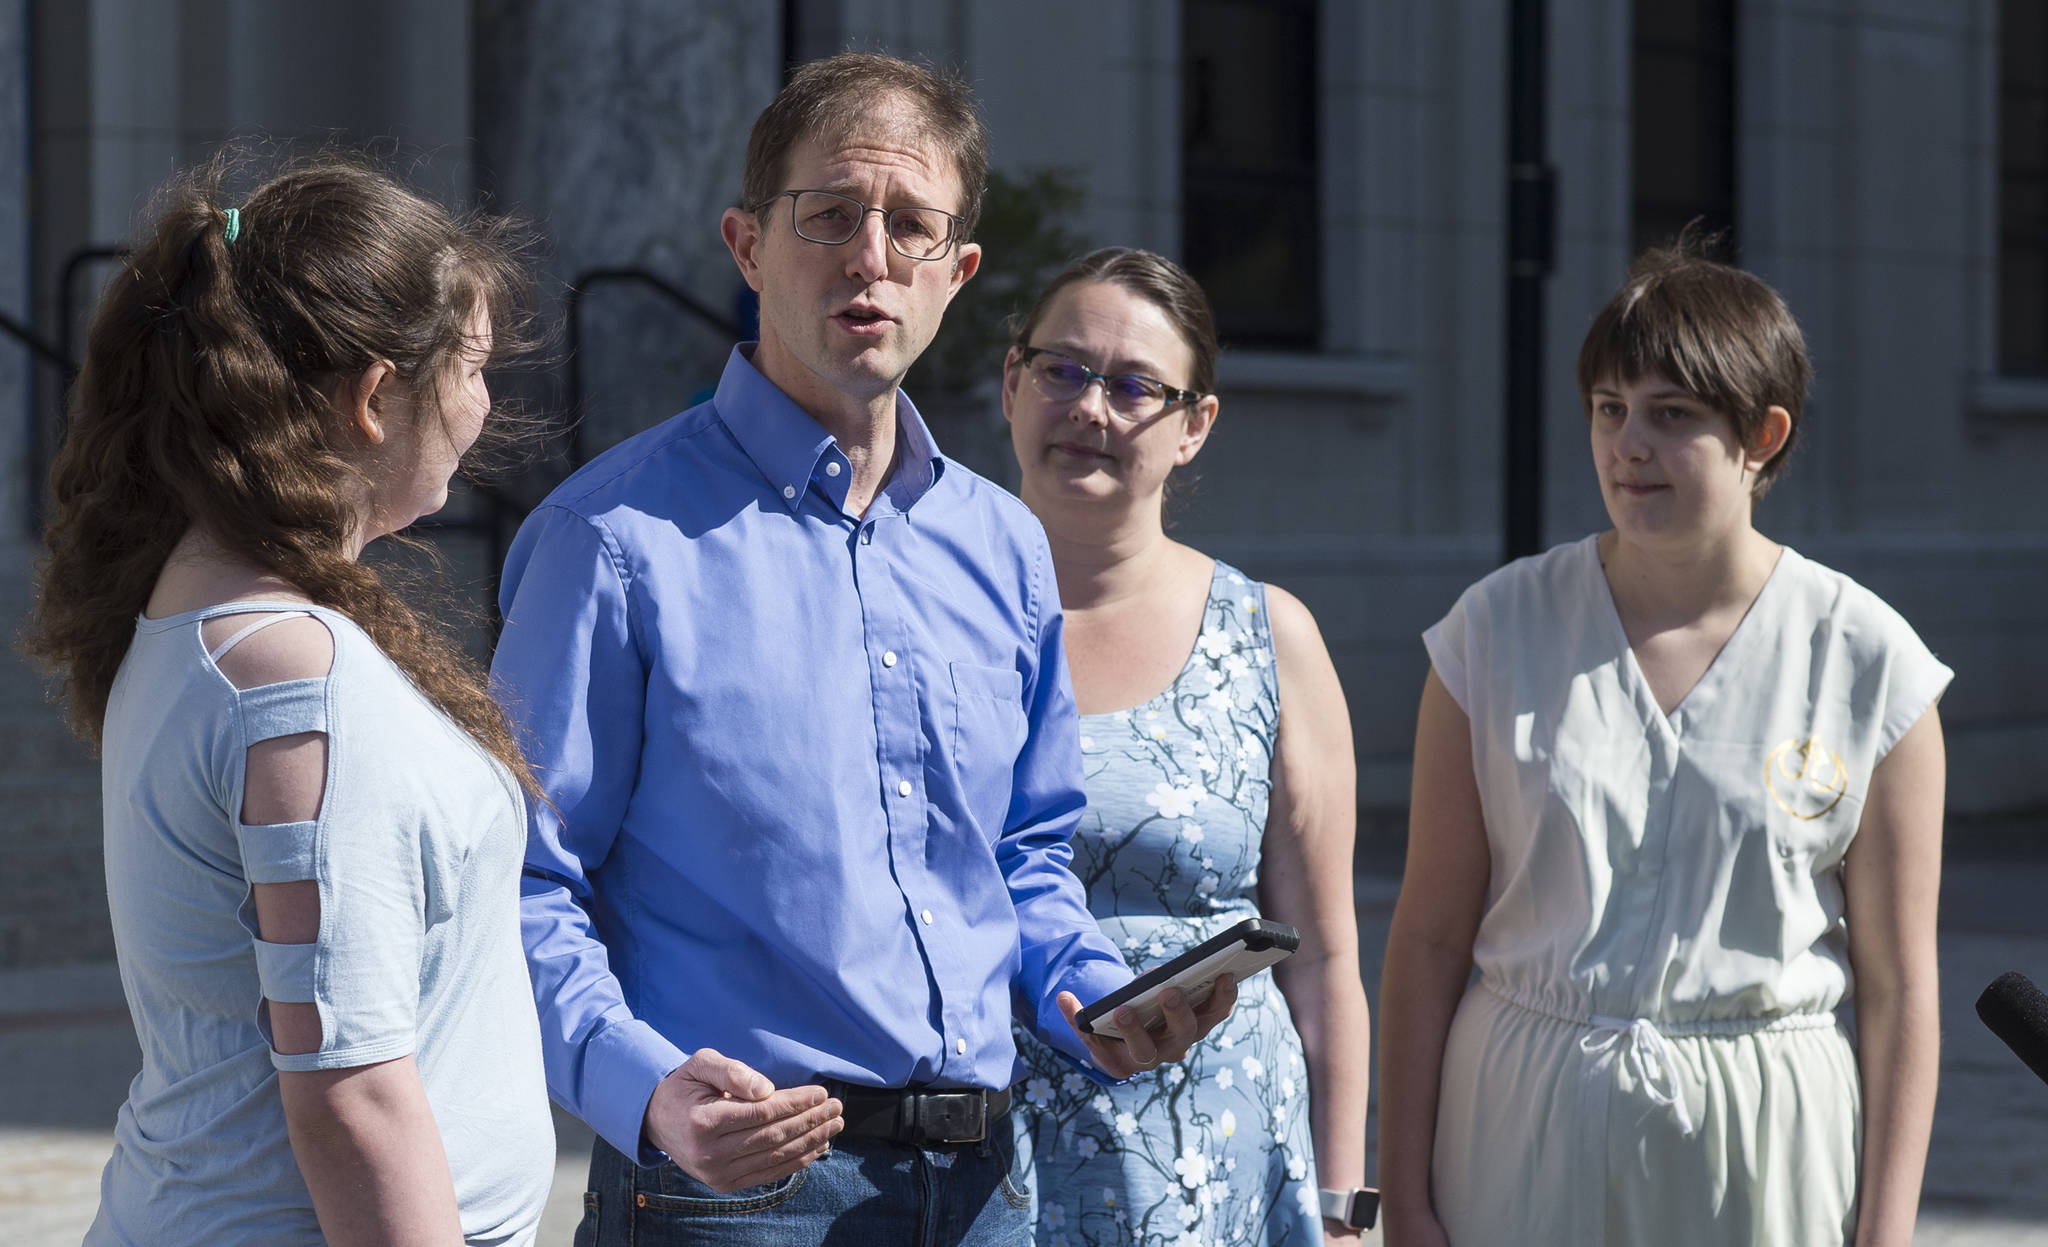 Jesse Kiehl announces his run for Senate District Q in front of the Alaska State Capitol with his wife, Karen Allen, and their daughters, Adara Allen, 13, left, and Tsifira Kiehl, 16, right, on Thursday, May 17, 2018. (Michael Penn | Juneau Empire)